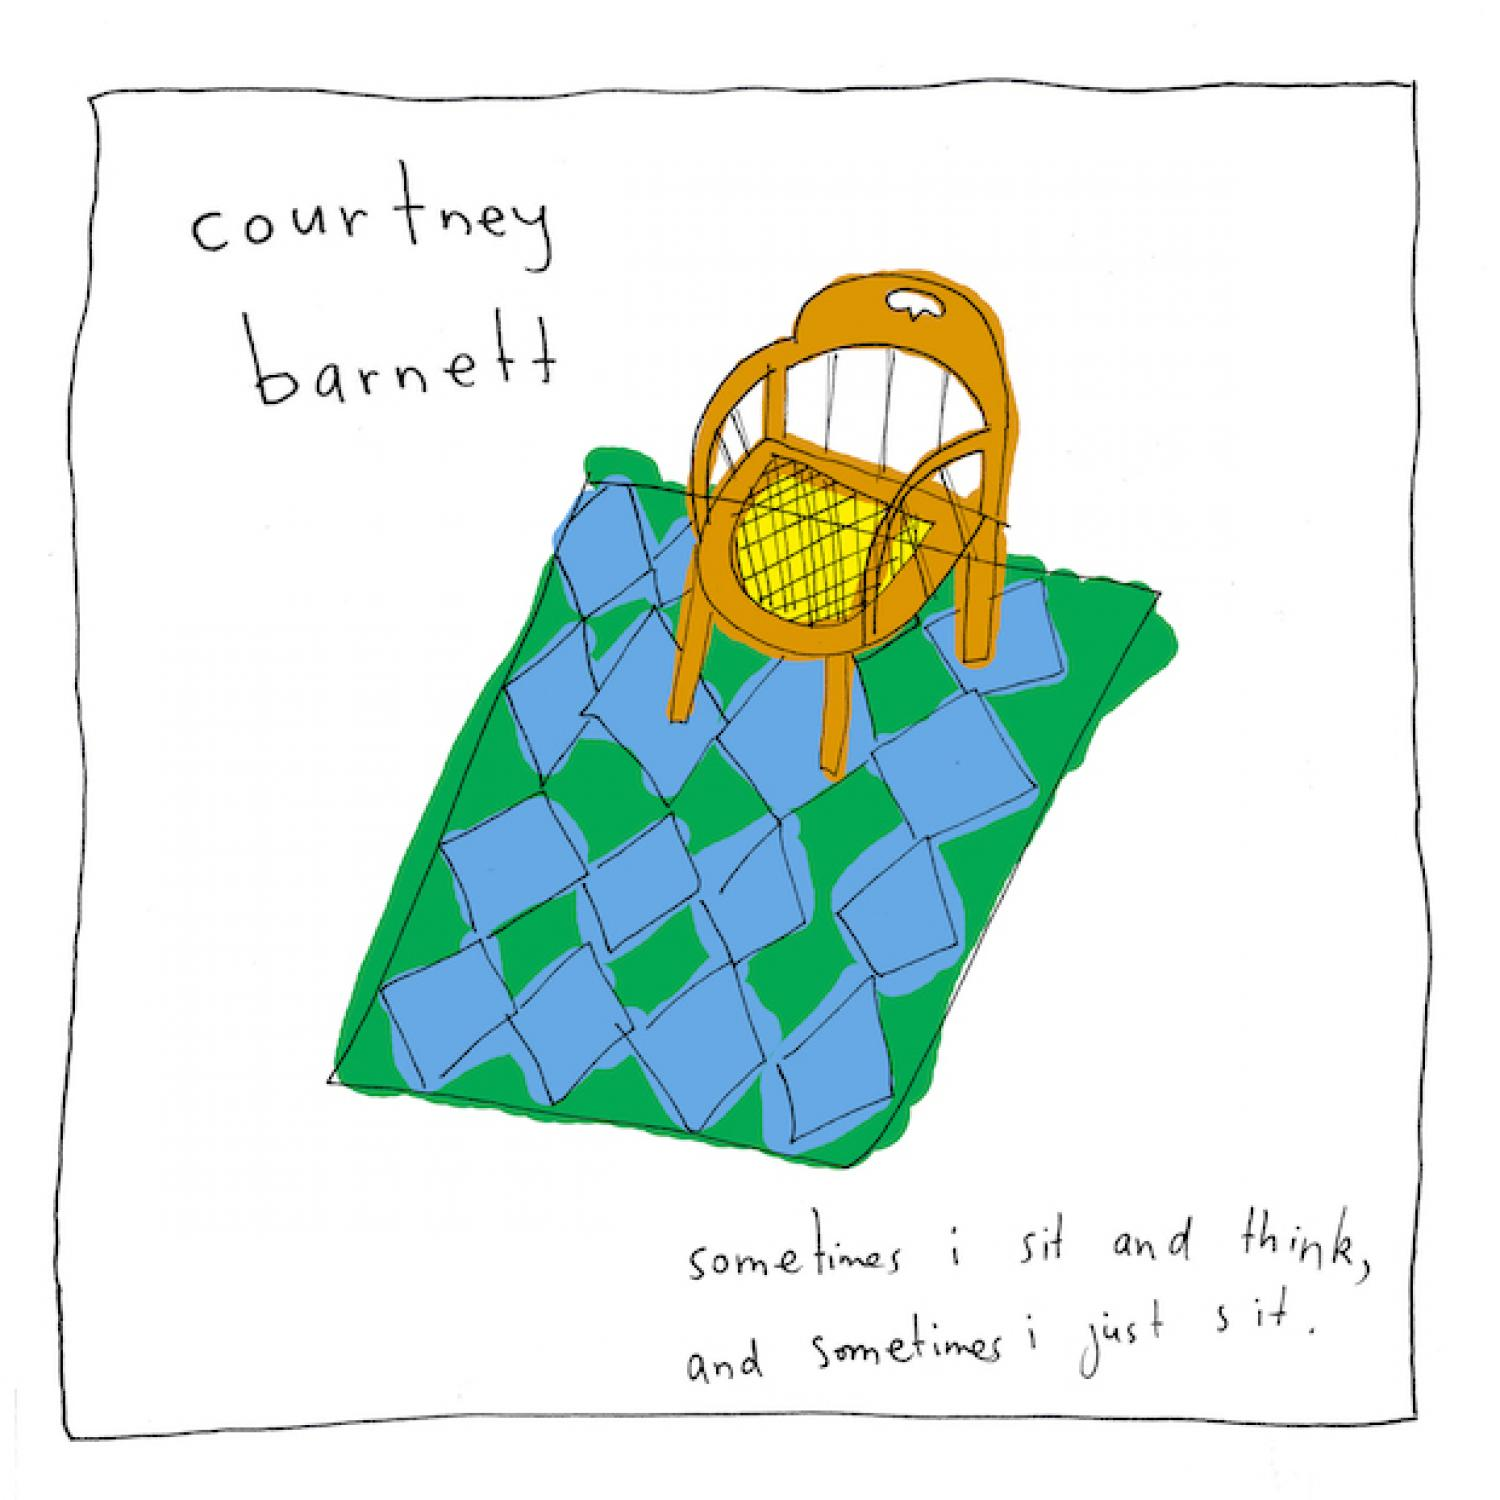 """8. COURTNEY BARNETT 